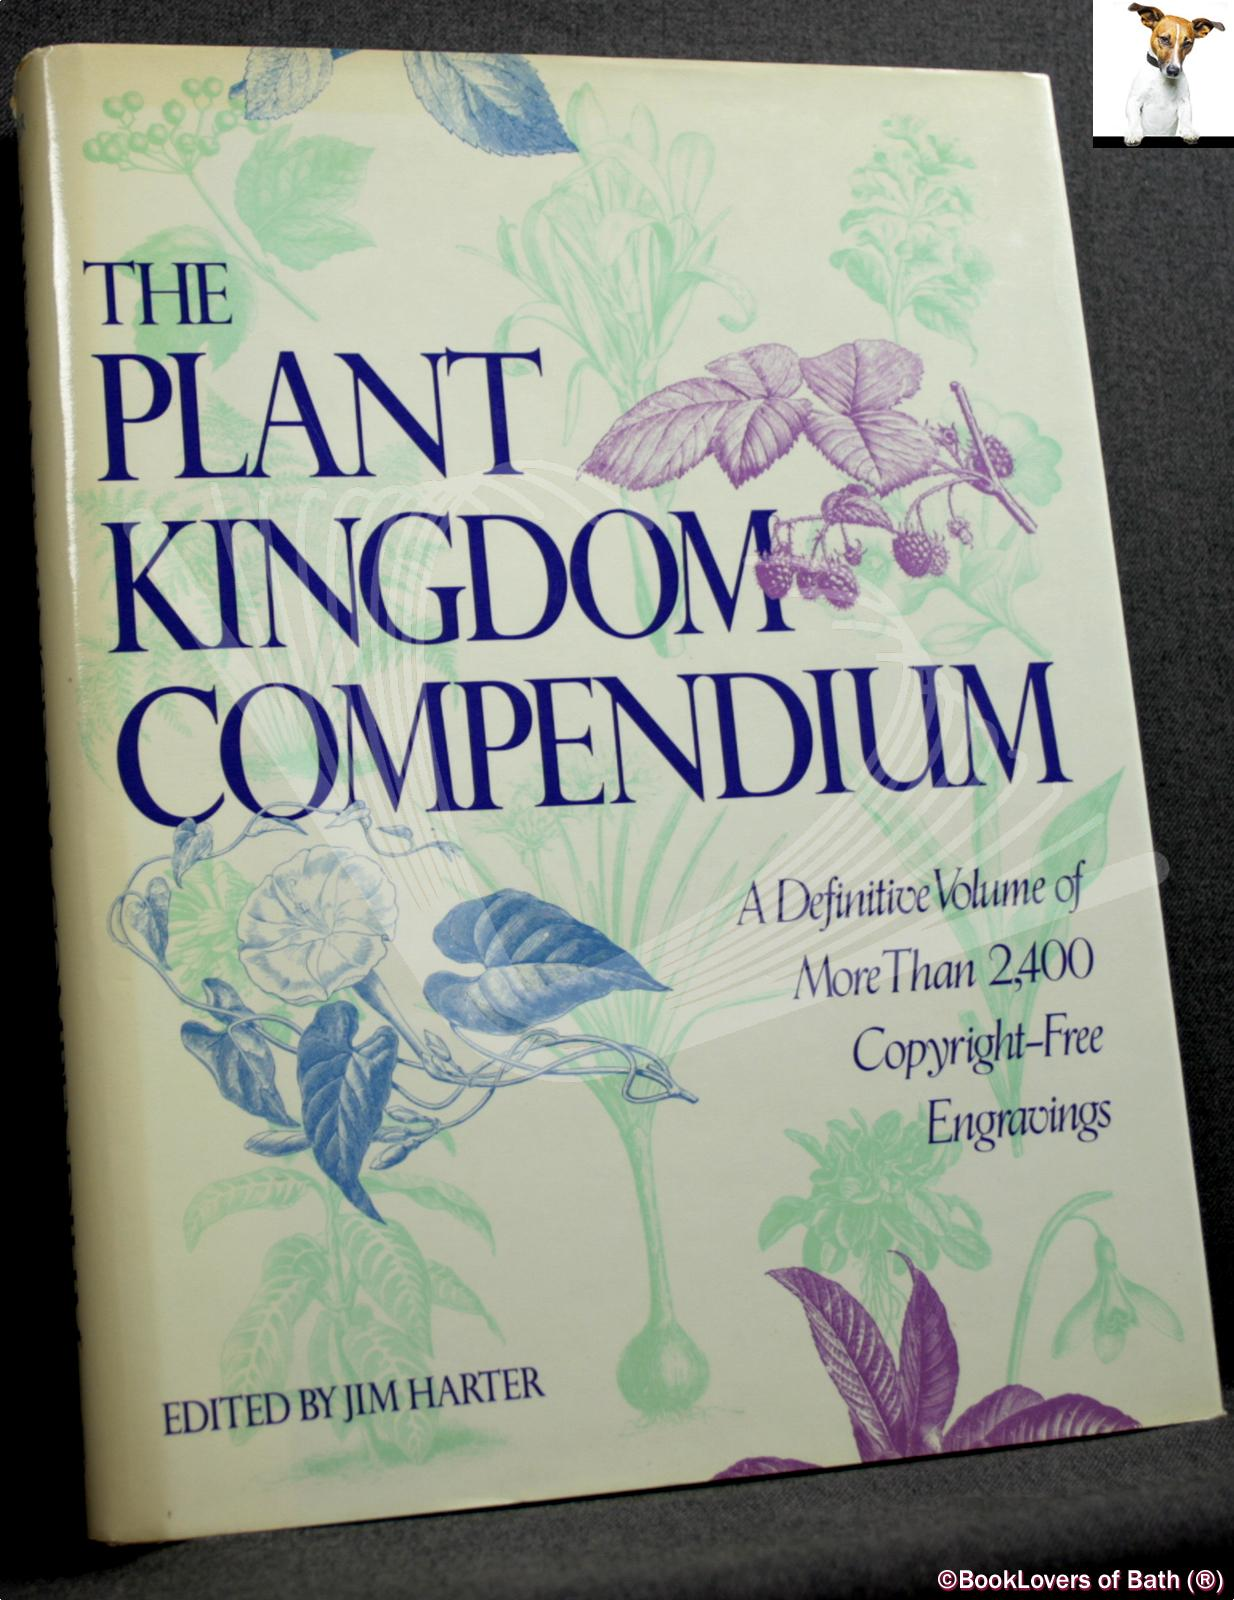 The Plant Kingdom Compendium: A Definitive Volume of More Than 2,400 Copyright-free Engravings - Edited by Jim Harter